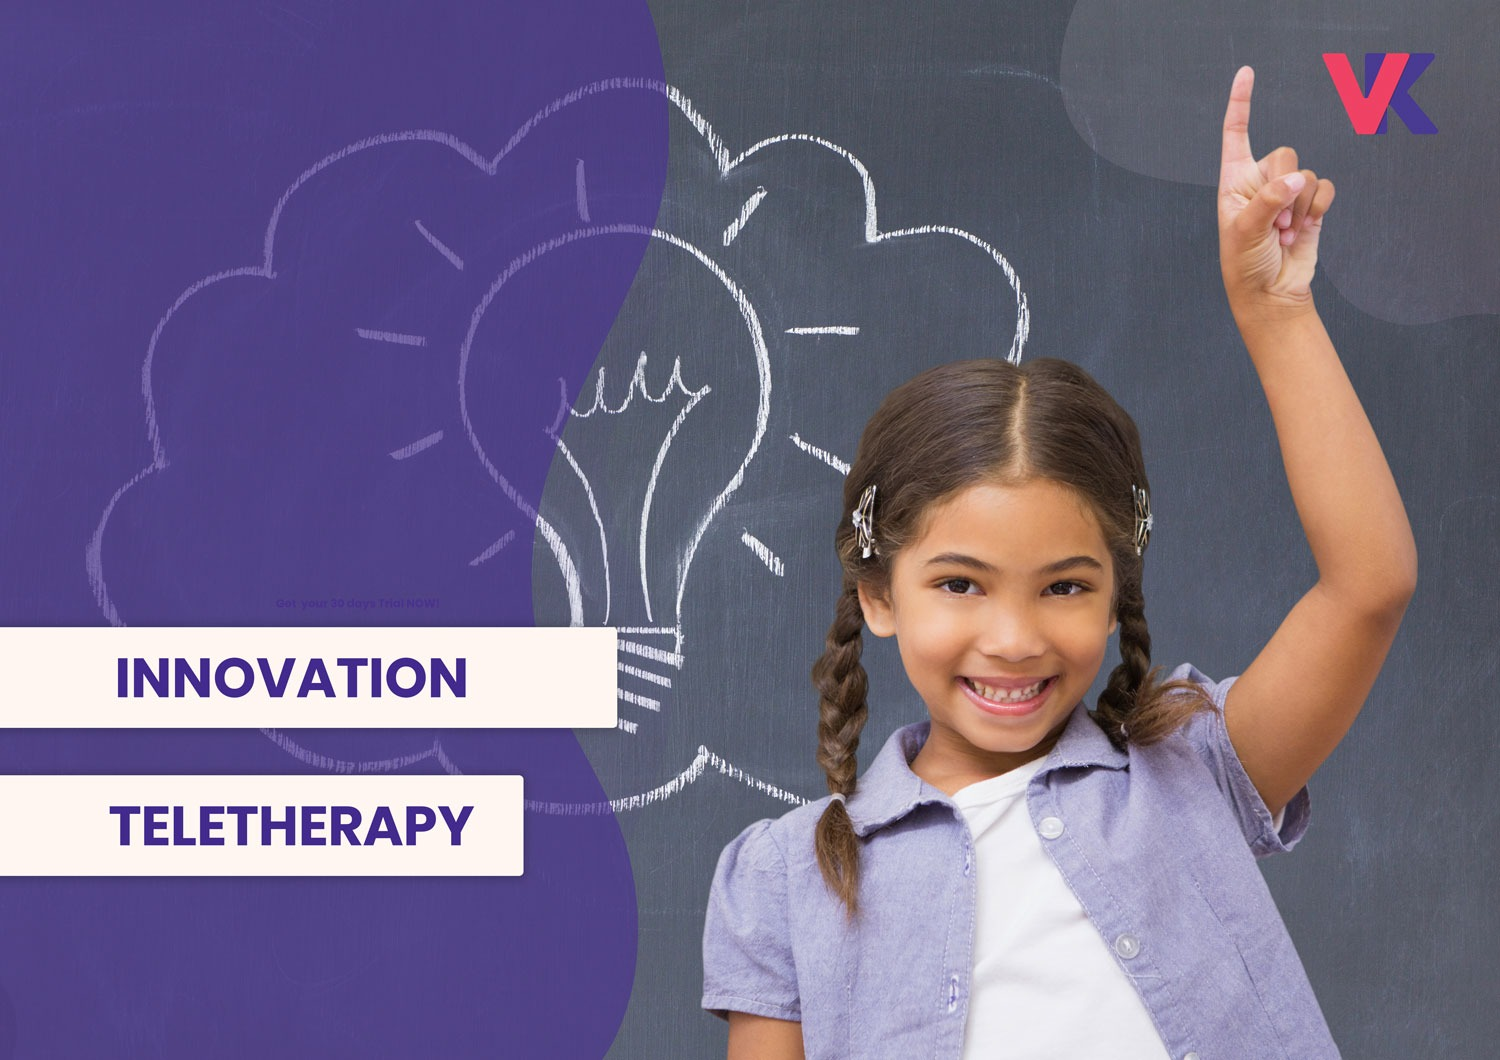 showing innovation in speech therapy